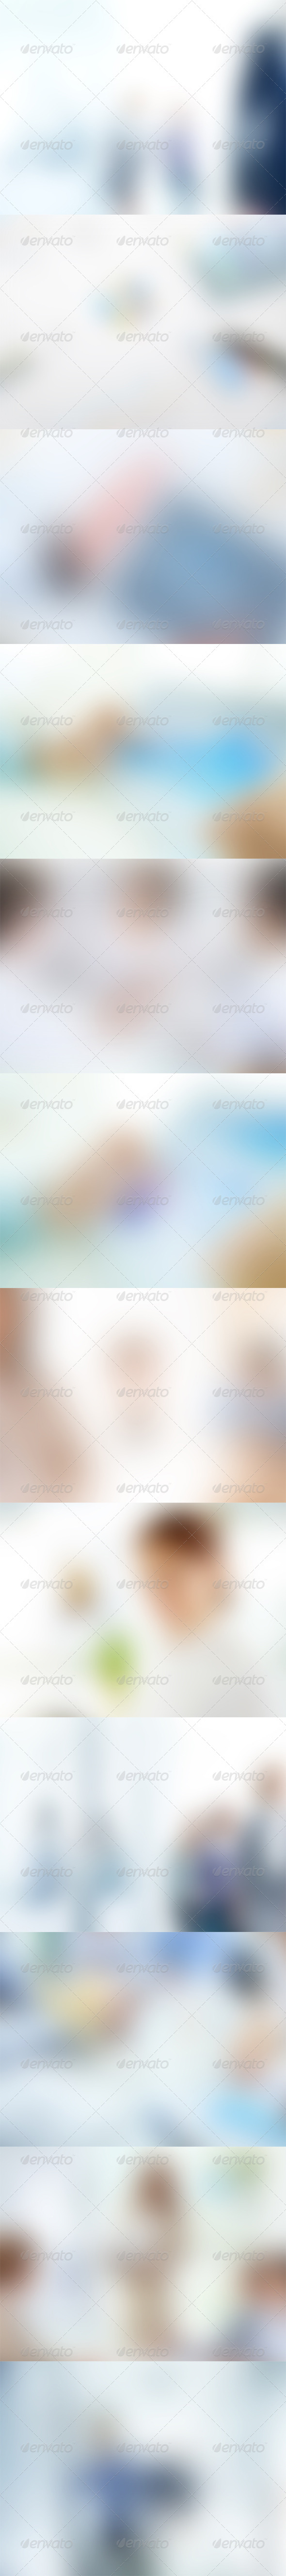 GraphicRiver White Backgrounds 5698726